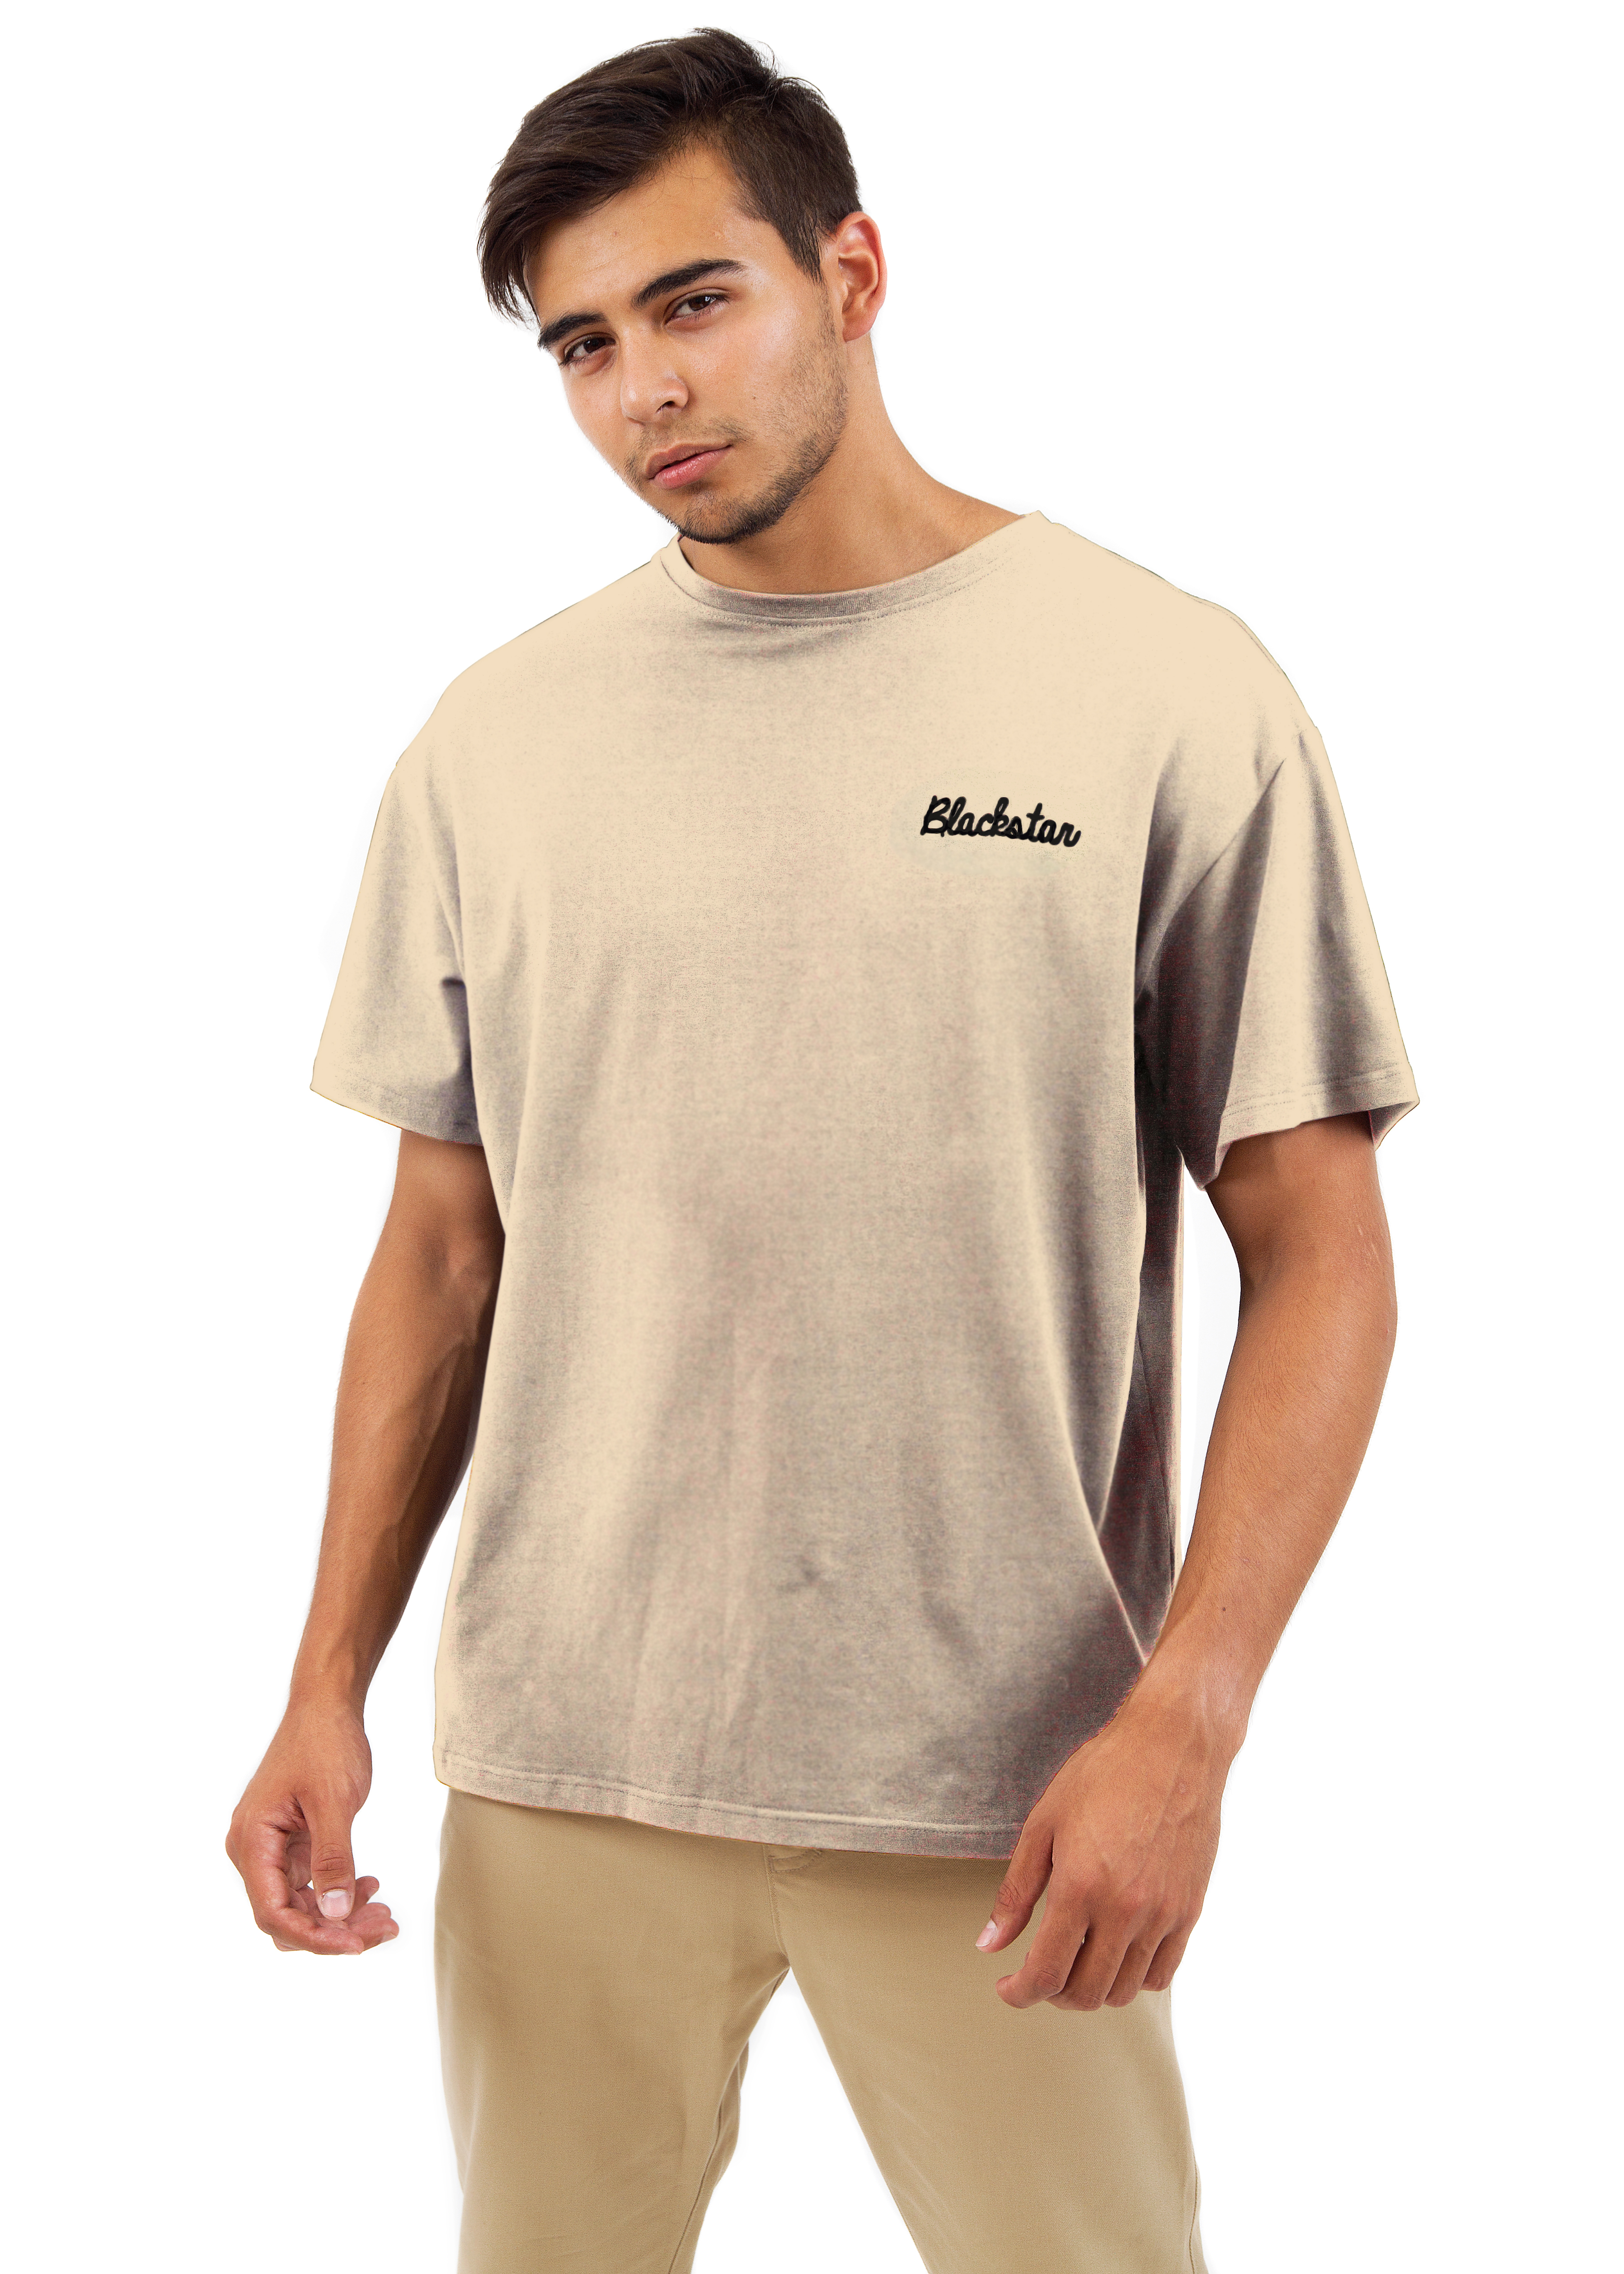 Mens t-shirt Black Star ClassicT-shirts and Jerseys<br>Mens basic t-shirt by Black Star Wear. Loose fit, round neck and half sleeve. High quality cotton tissue to give you maximum comfort, this t-shirt will become one of you favorite basic garments. Availiable in black, khaki and beige, decorated with a small brand embroidery on the left side of the chest.<br><br>size: XS<br>color: Beige<br>gender: male